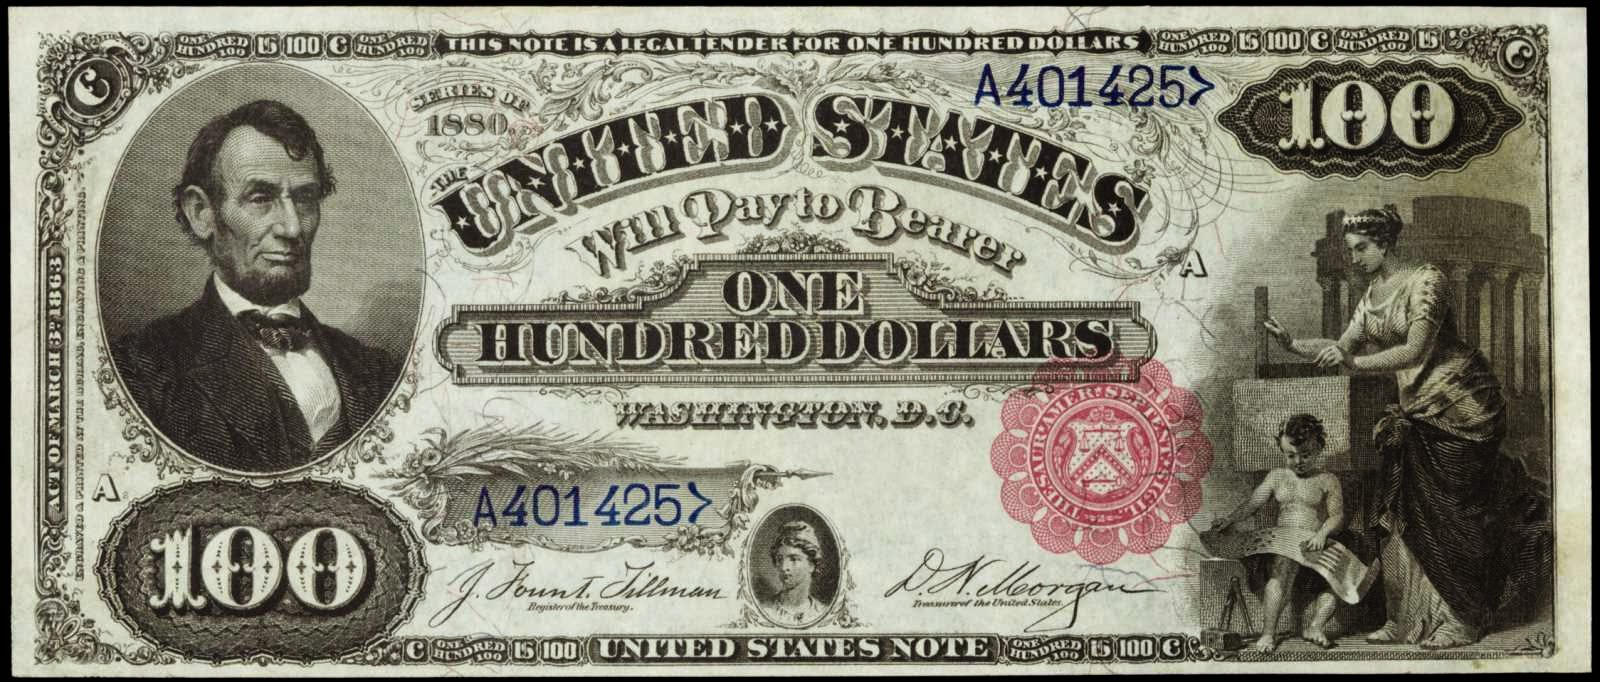 United States 100 Dollar Legal Tender Note, Abraham Lincoln